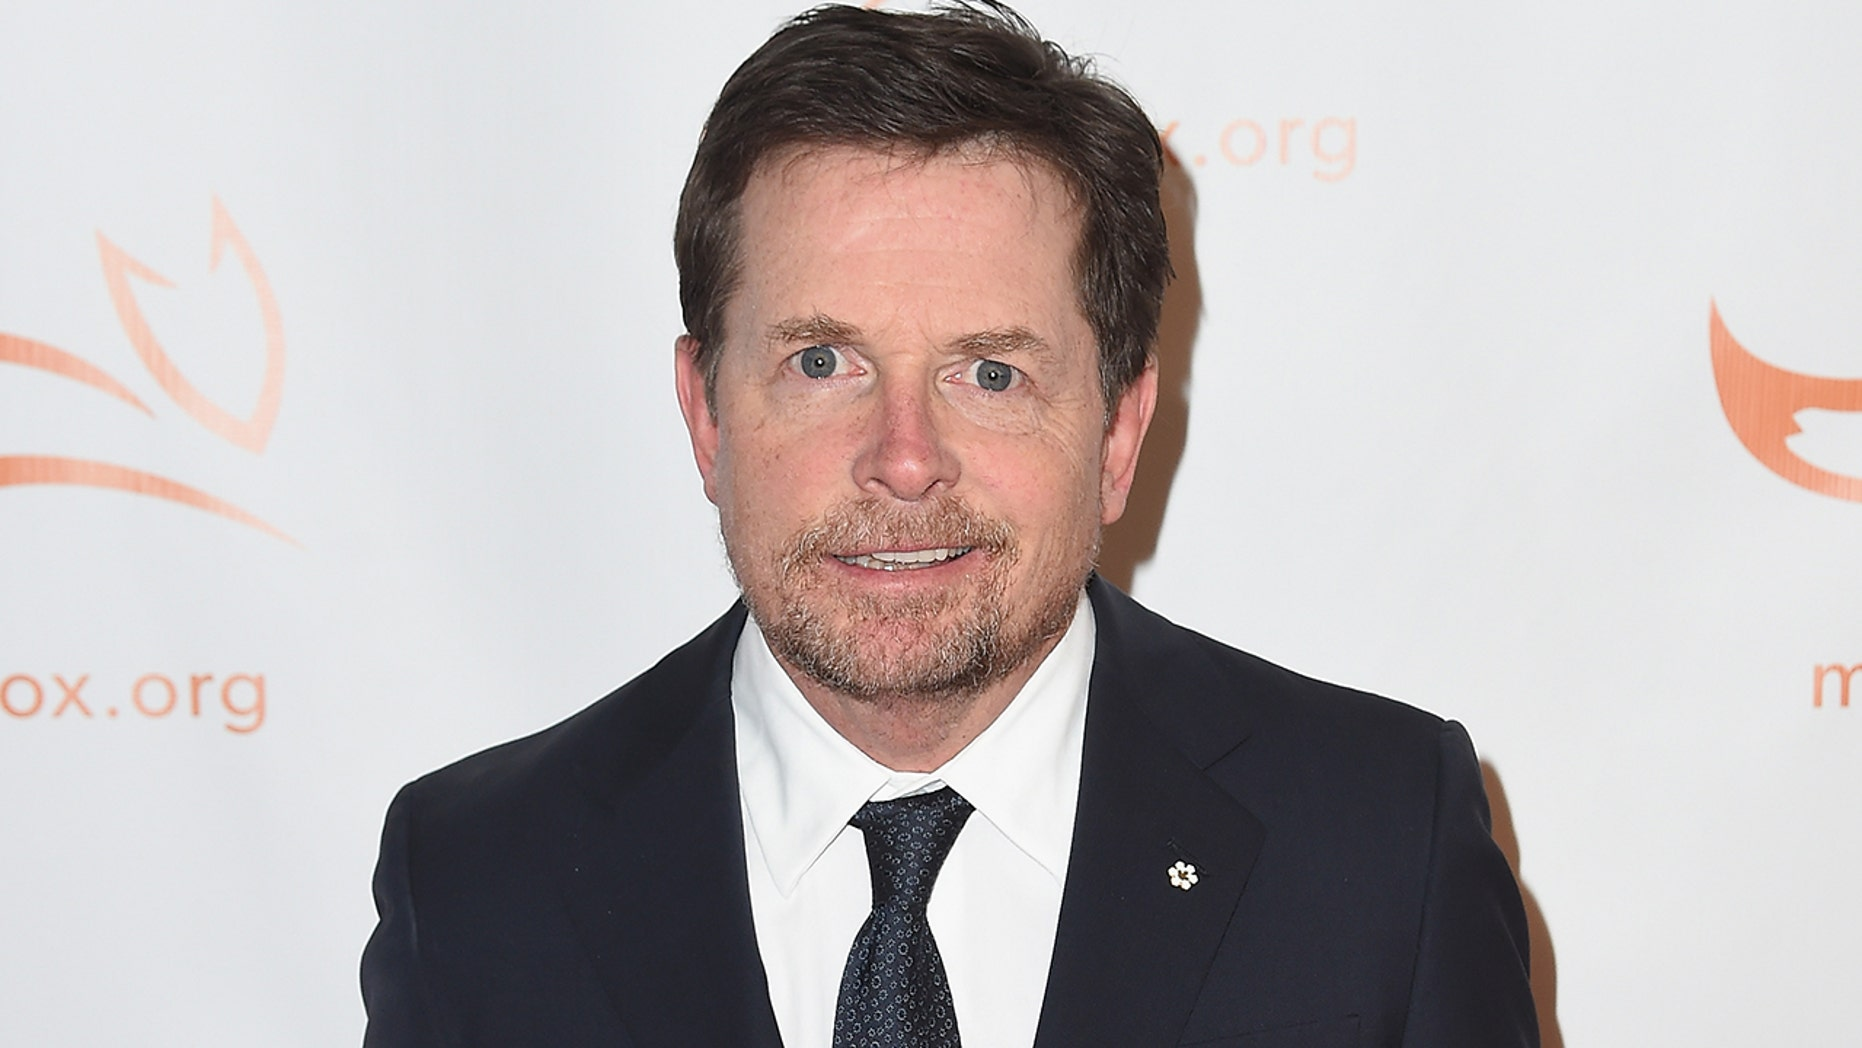 Michael J. Fox opened up about health scares he recently faced amid his battle with Parkinson's disease.